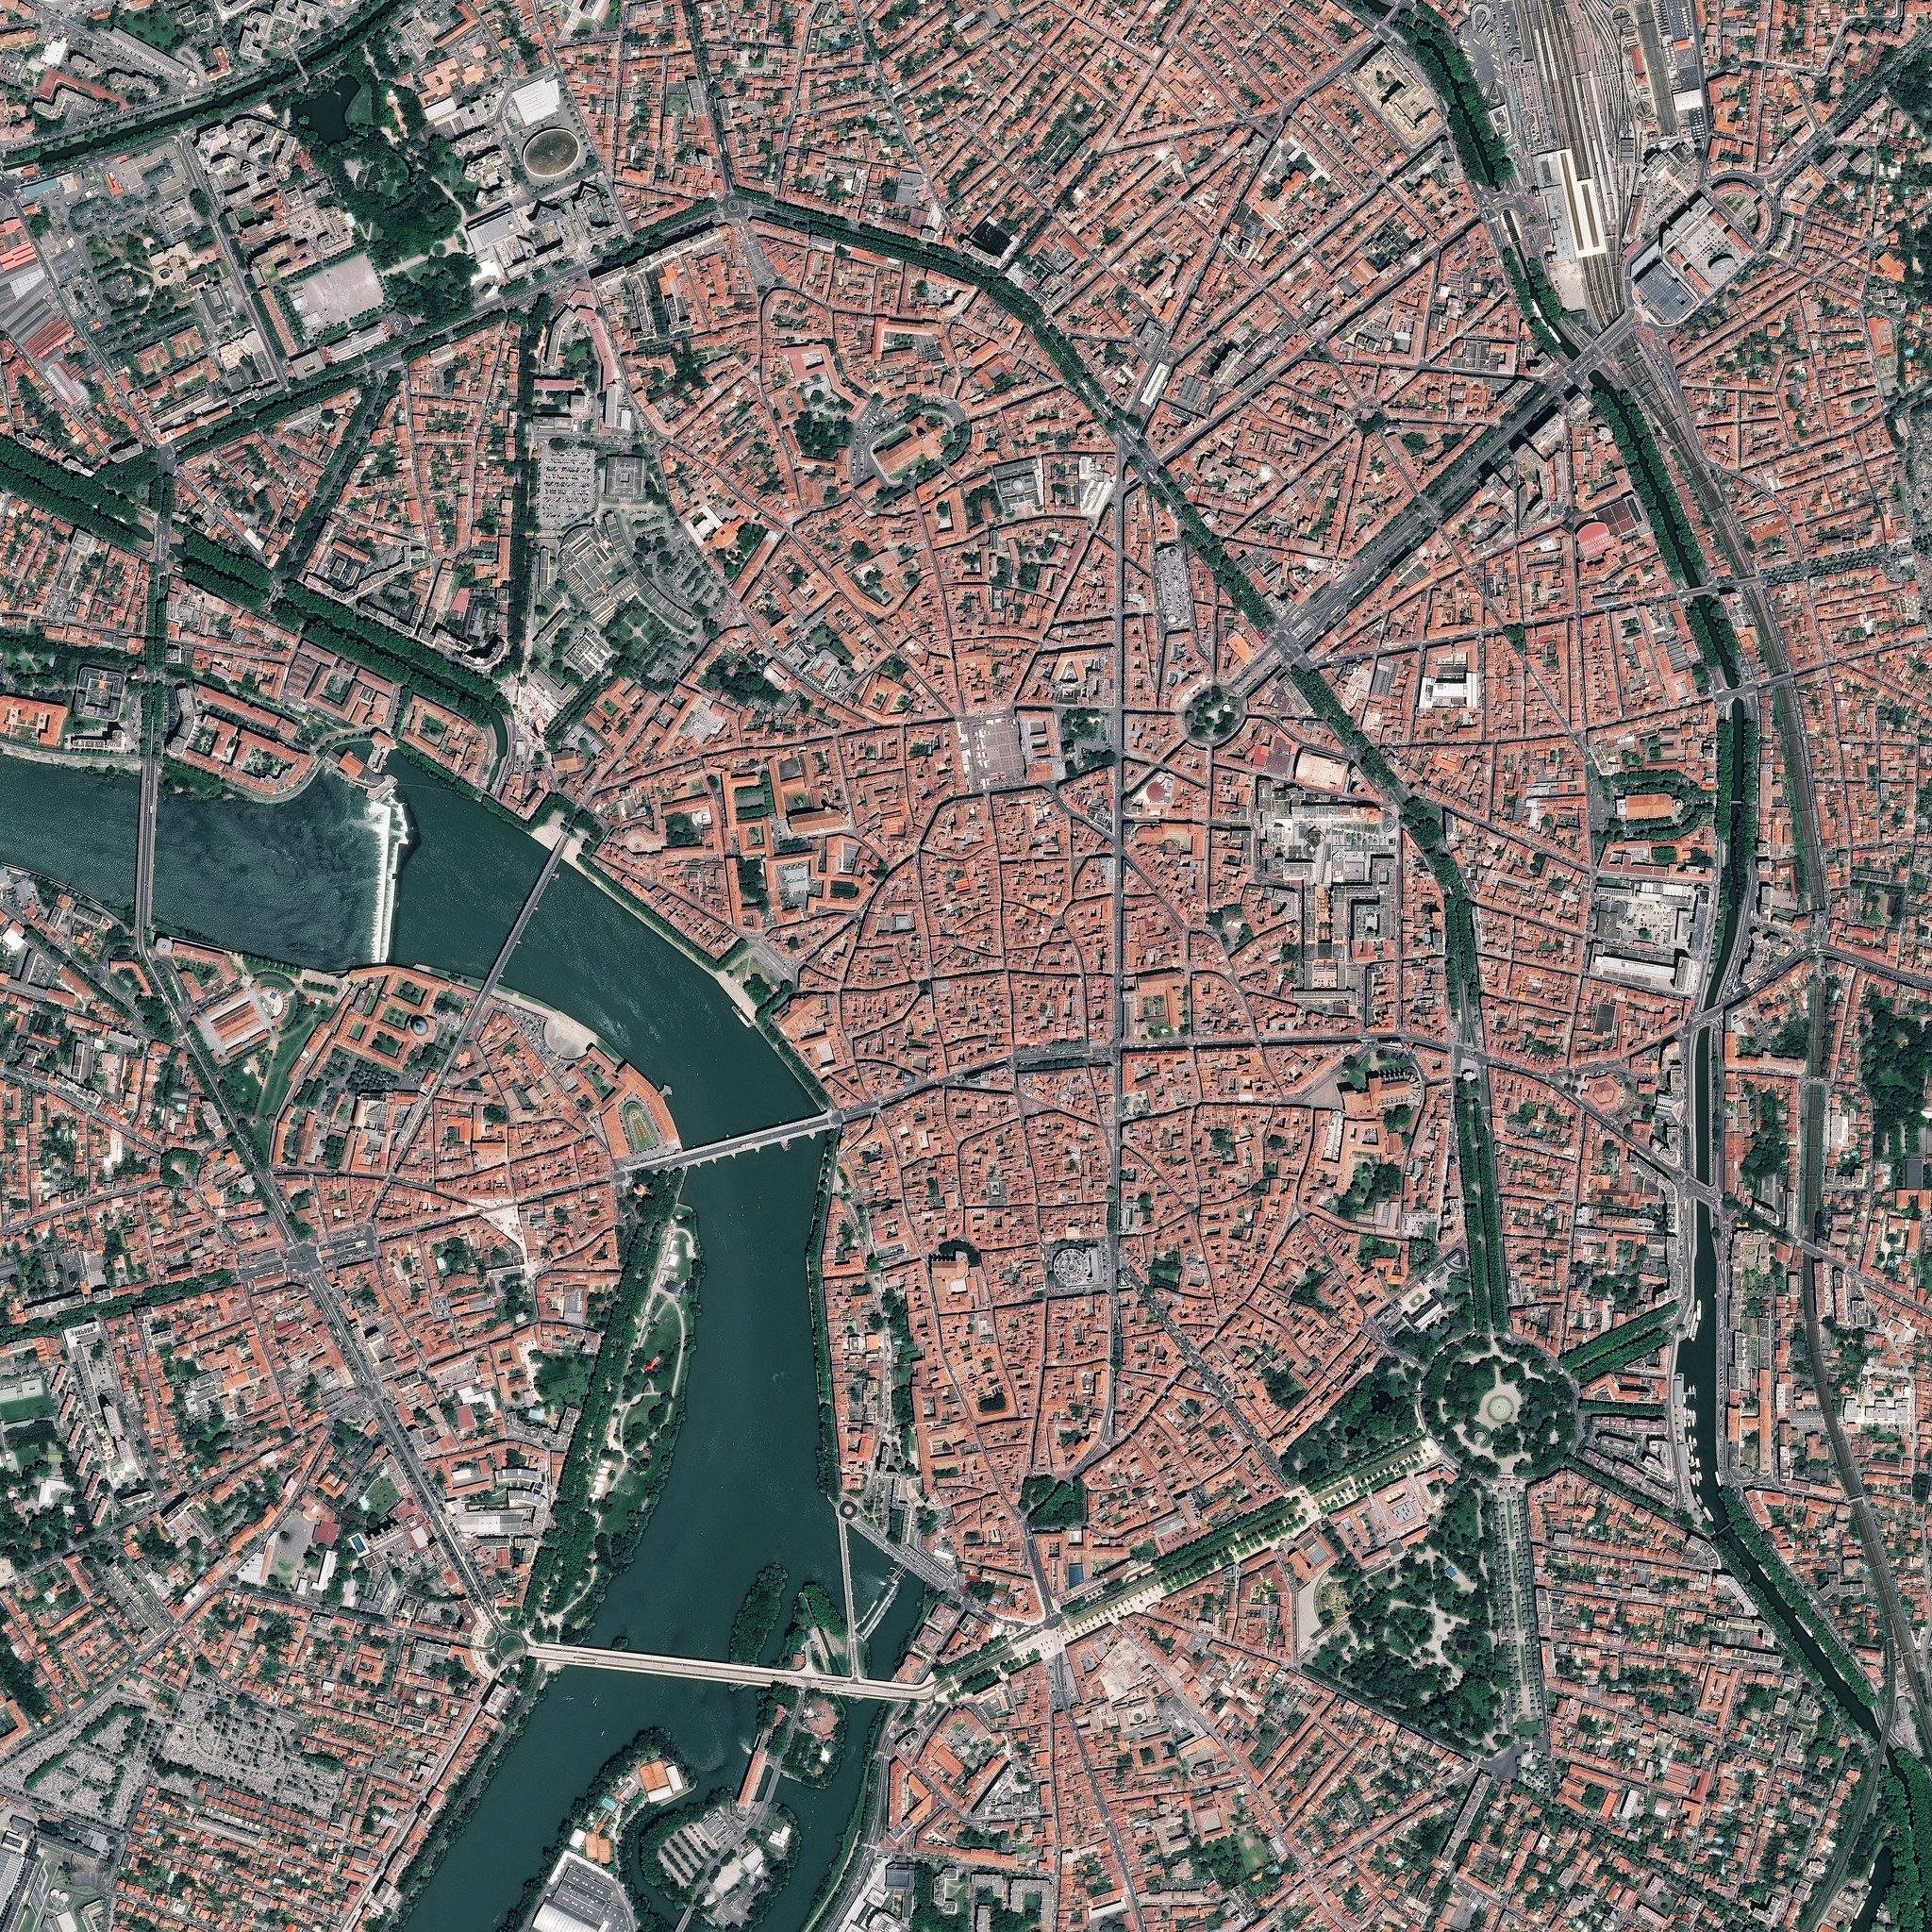 toulouse_phr-20140605.jpg